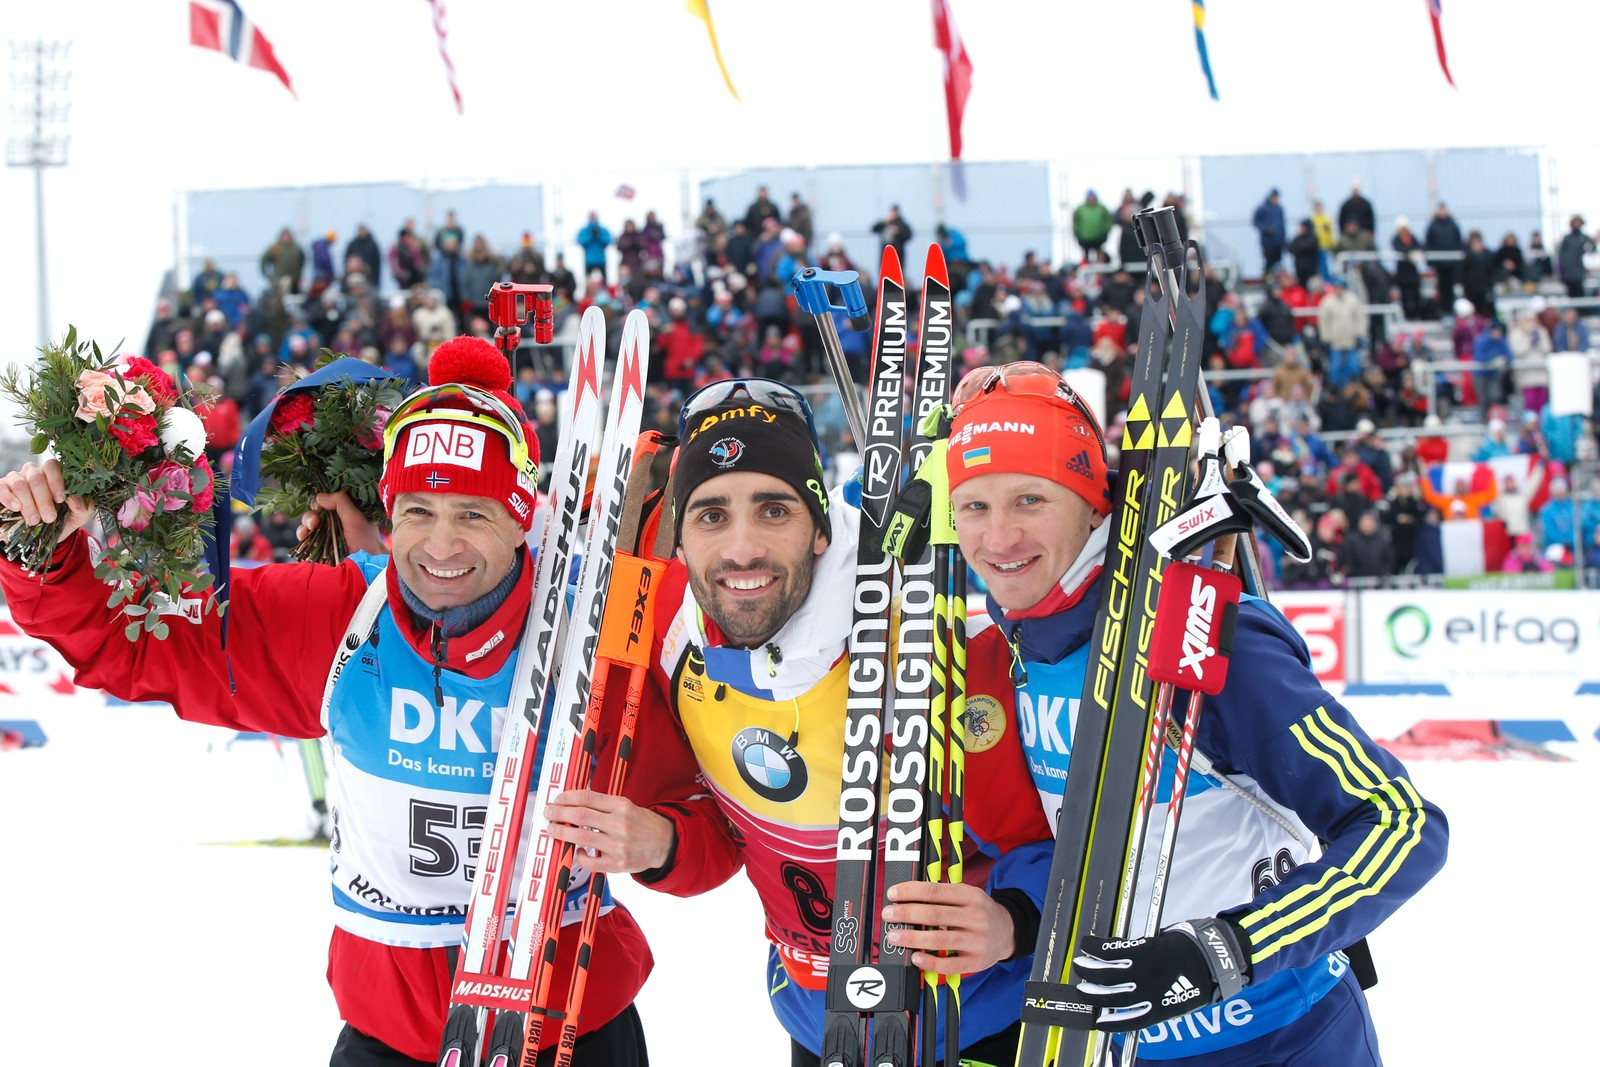 IBU Biathlon World Championships Oslo 2016: Sprint events Saturday 5 March:  Gold Martin Fourcade (FRA), silver Ole Einar Bjørndalen (NOR) (left) and bronze Sergej Semenov (UKR) (right).